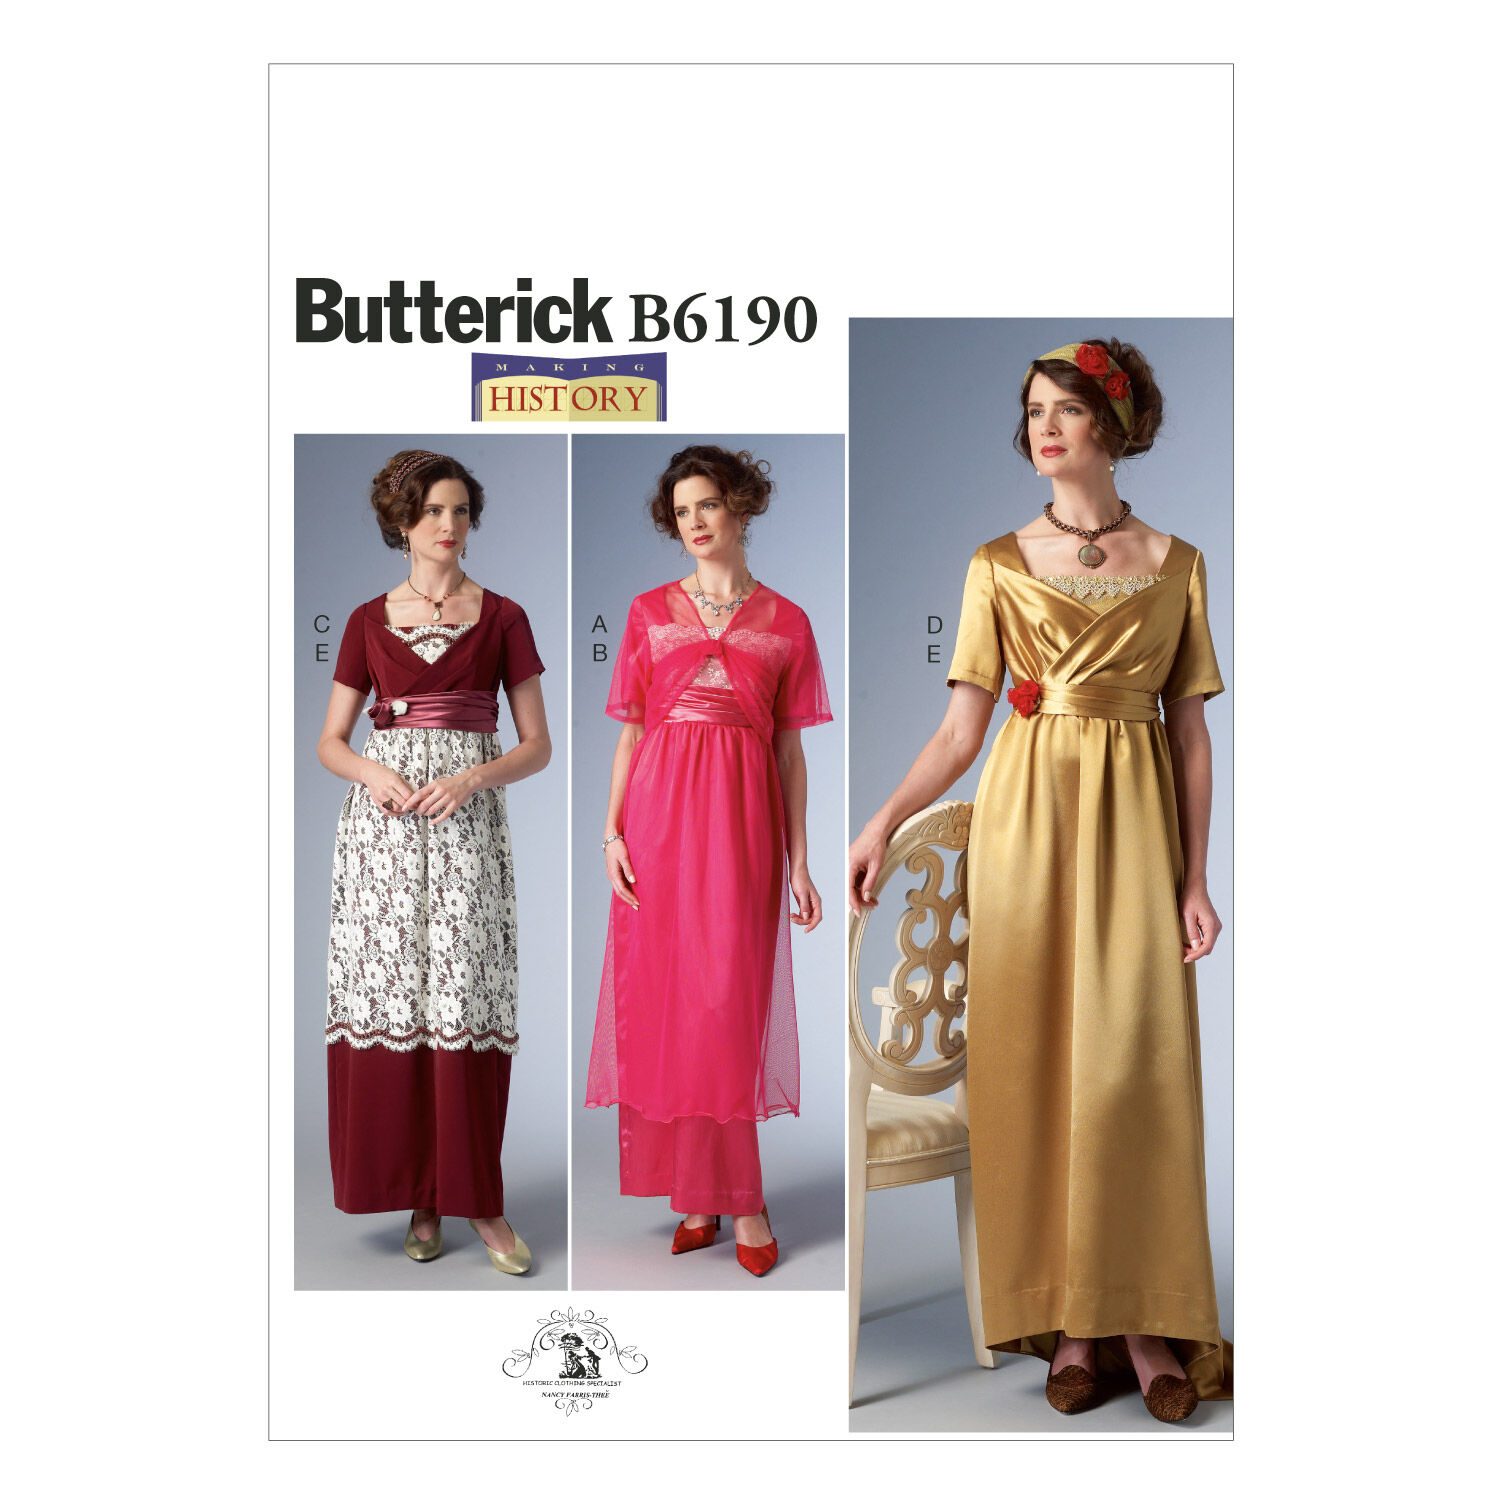 Edwardian Sewing Patterns- Dresses, Skirts, Blouses, Costumes Butterick - Pattern B6190 - Empire - Waist Dress Jacket and Headbands - Sizes 6-8-10-12-14 - Patterns - At JOANN Fabrics  Crafts $19.95 AT vintagedancer.com